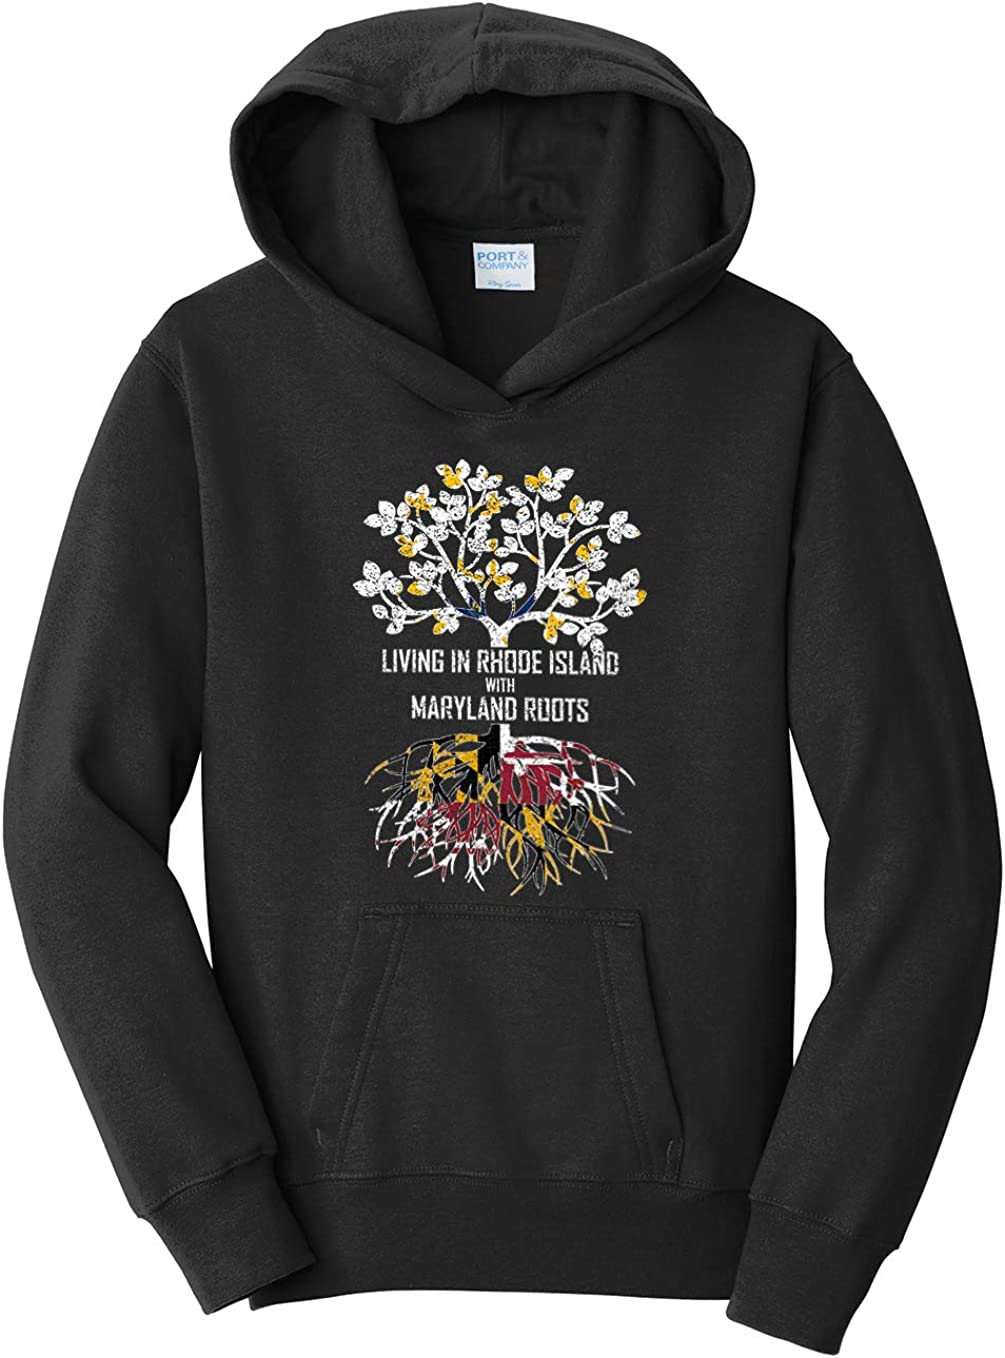 Tenacitee Girls Living in Rhode Island with Maryland Roots Hooded Sweatshirt